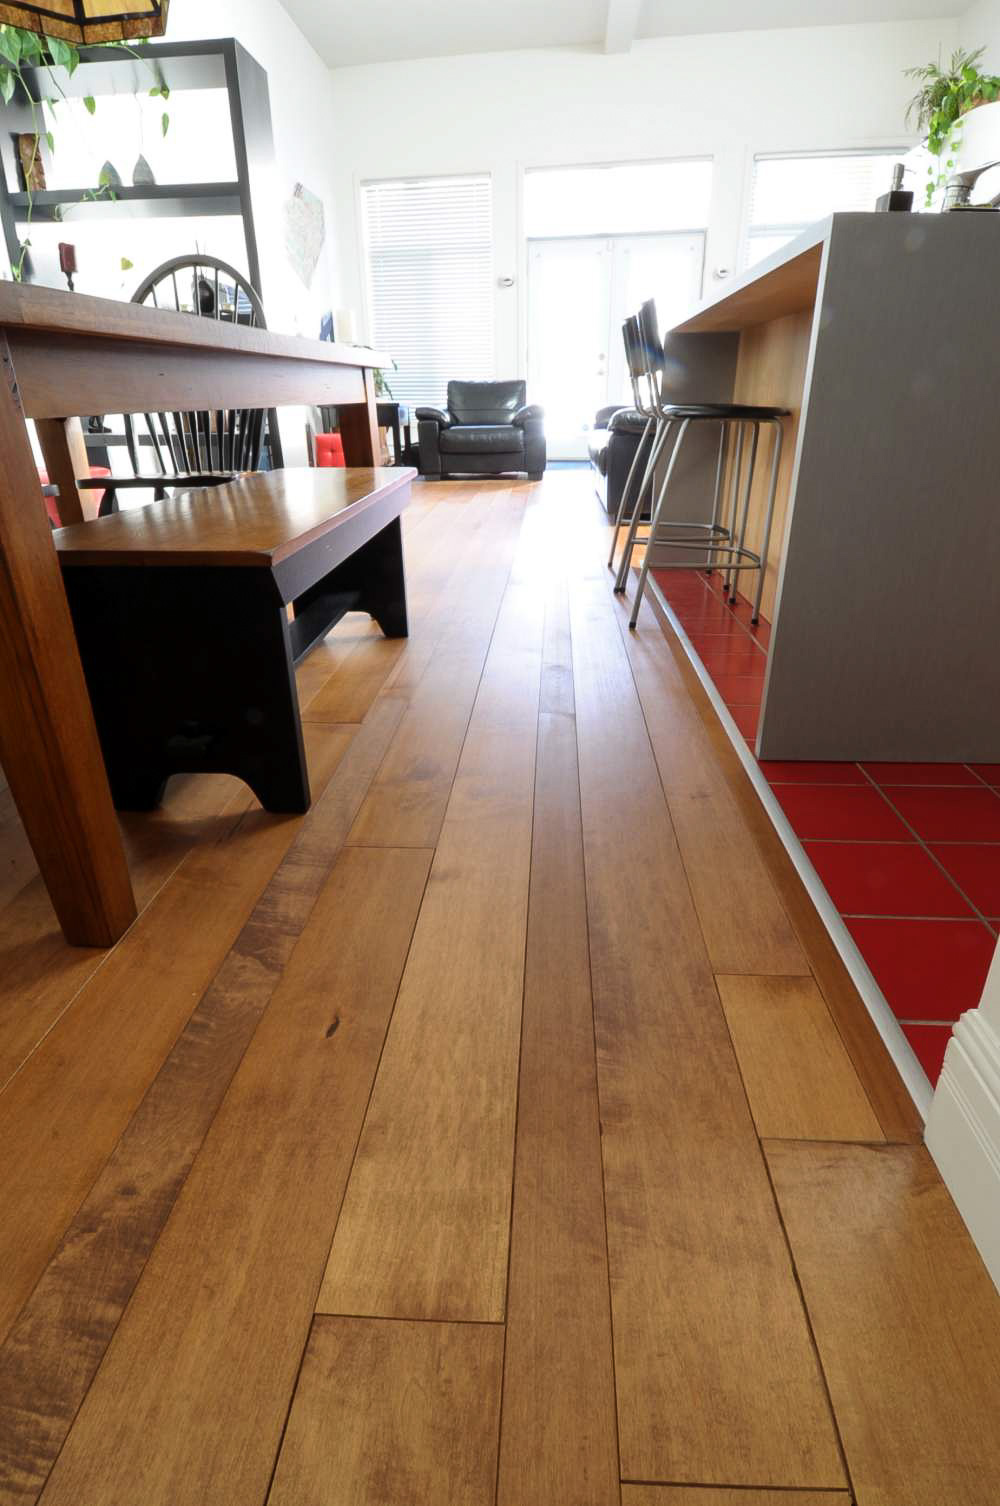 maple hardwood floor stained.jpg